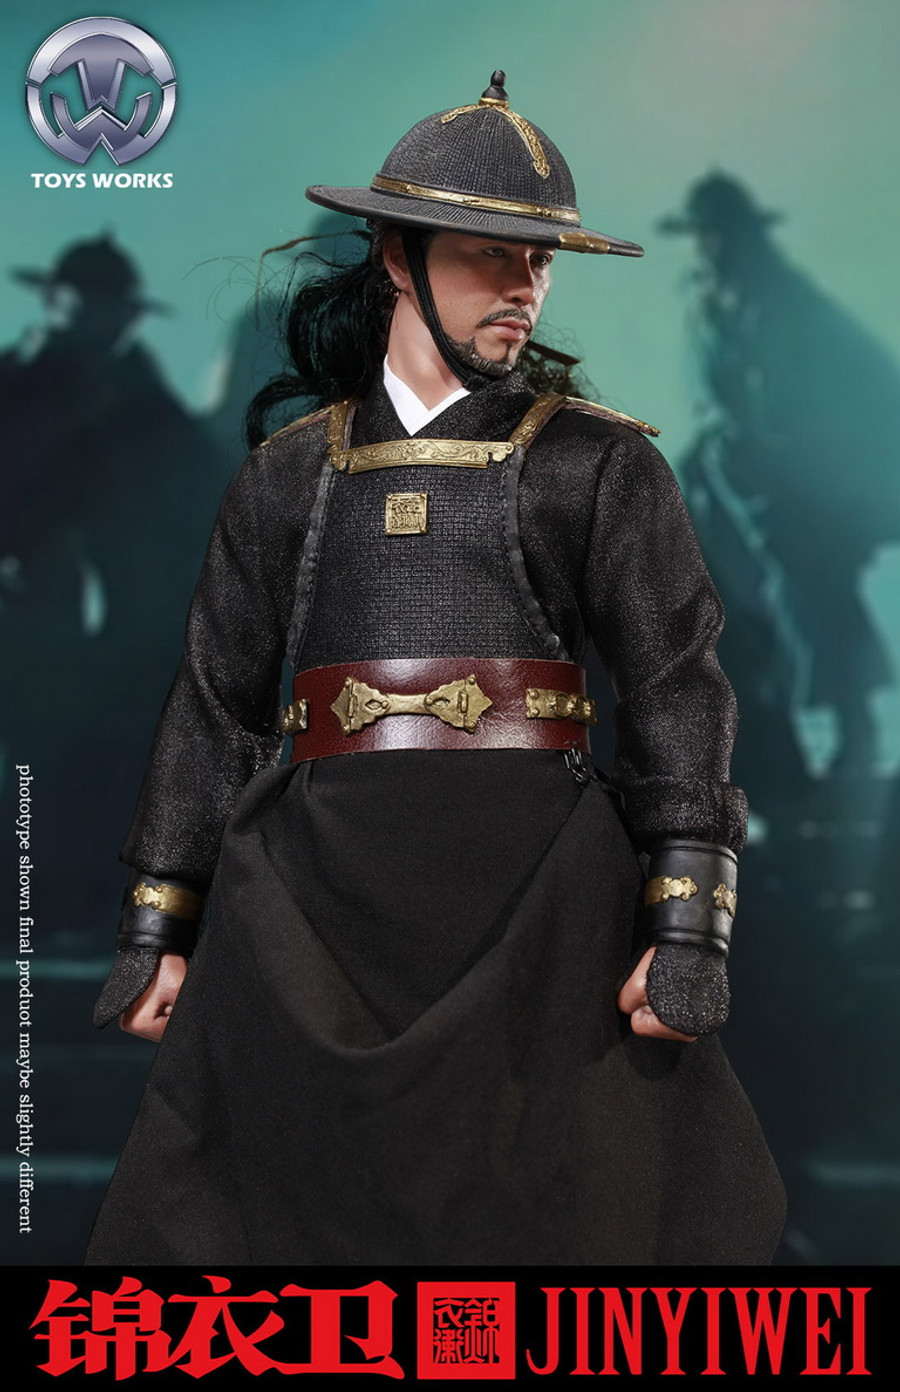 Toys Works - Ming Dynasty Embroidered Uniform Guard